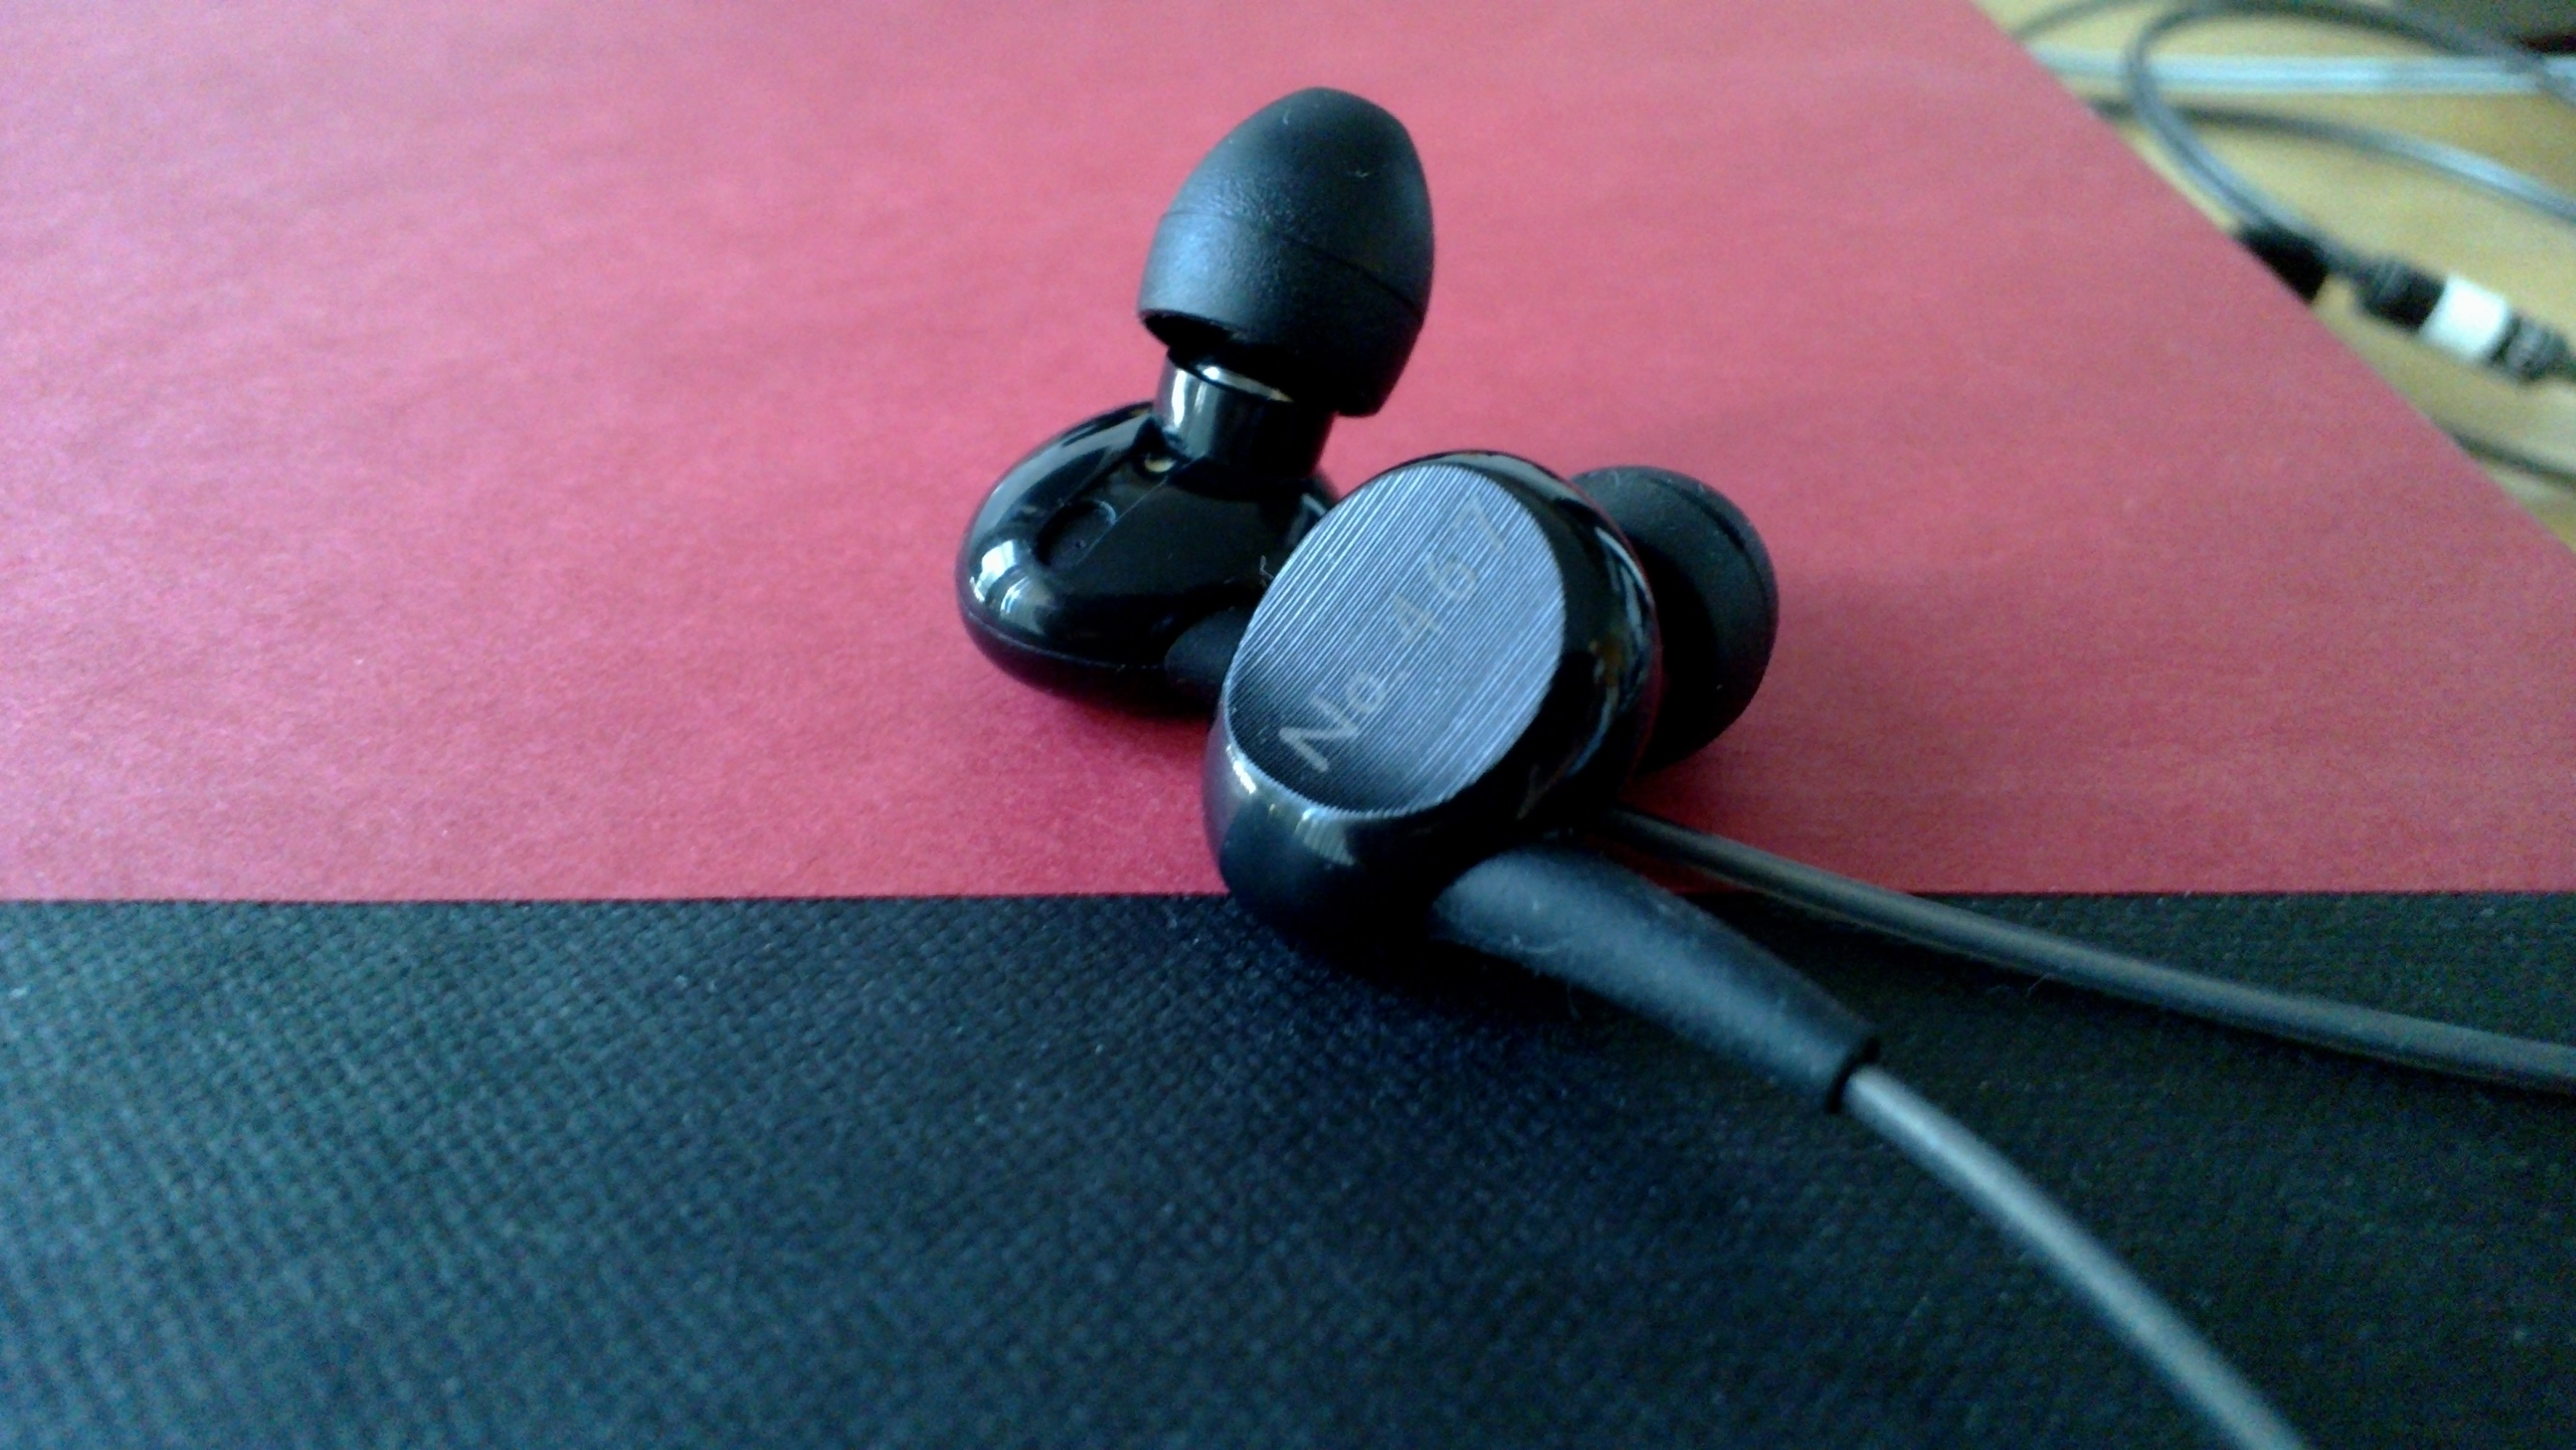 The Discovery Thread New Bgvp Dmg Initial Impressions Pg2507 Hp In Ear H2310 Navy Blue Headset 13120229